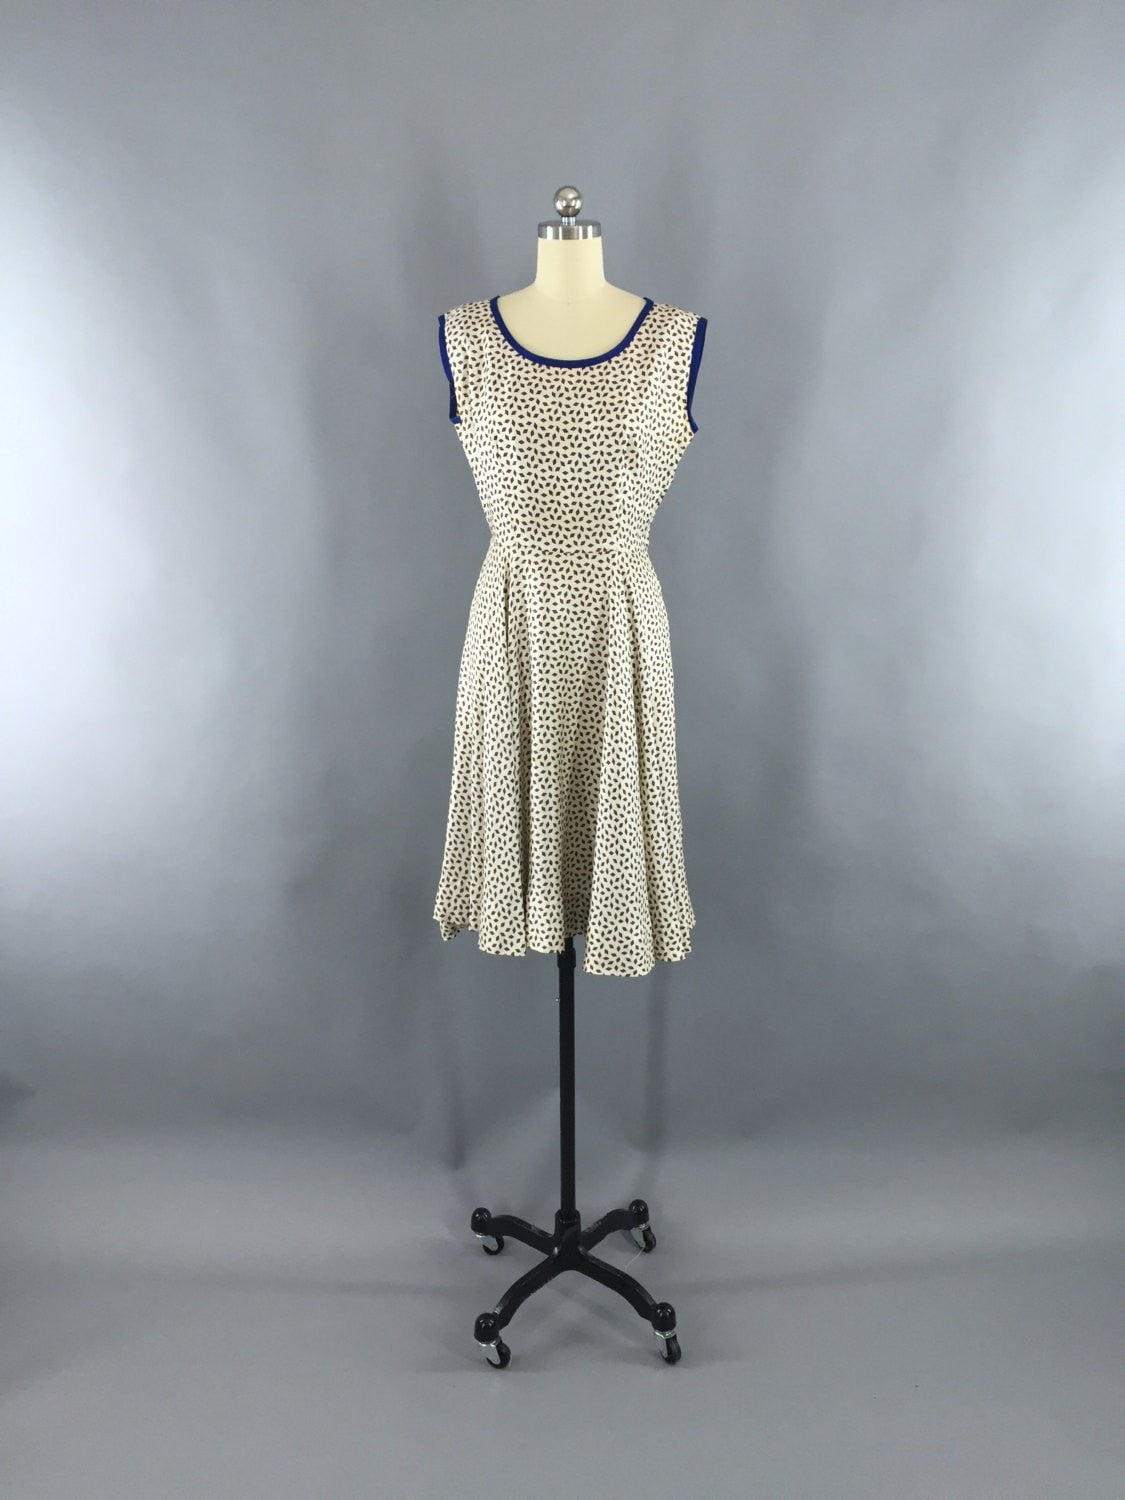 1950s Vintage Ivory Novelty Print Dress Dress ThisBlueBird - Sale